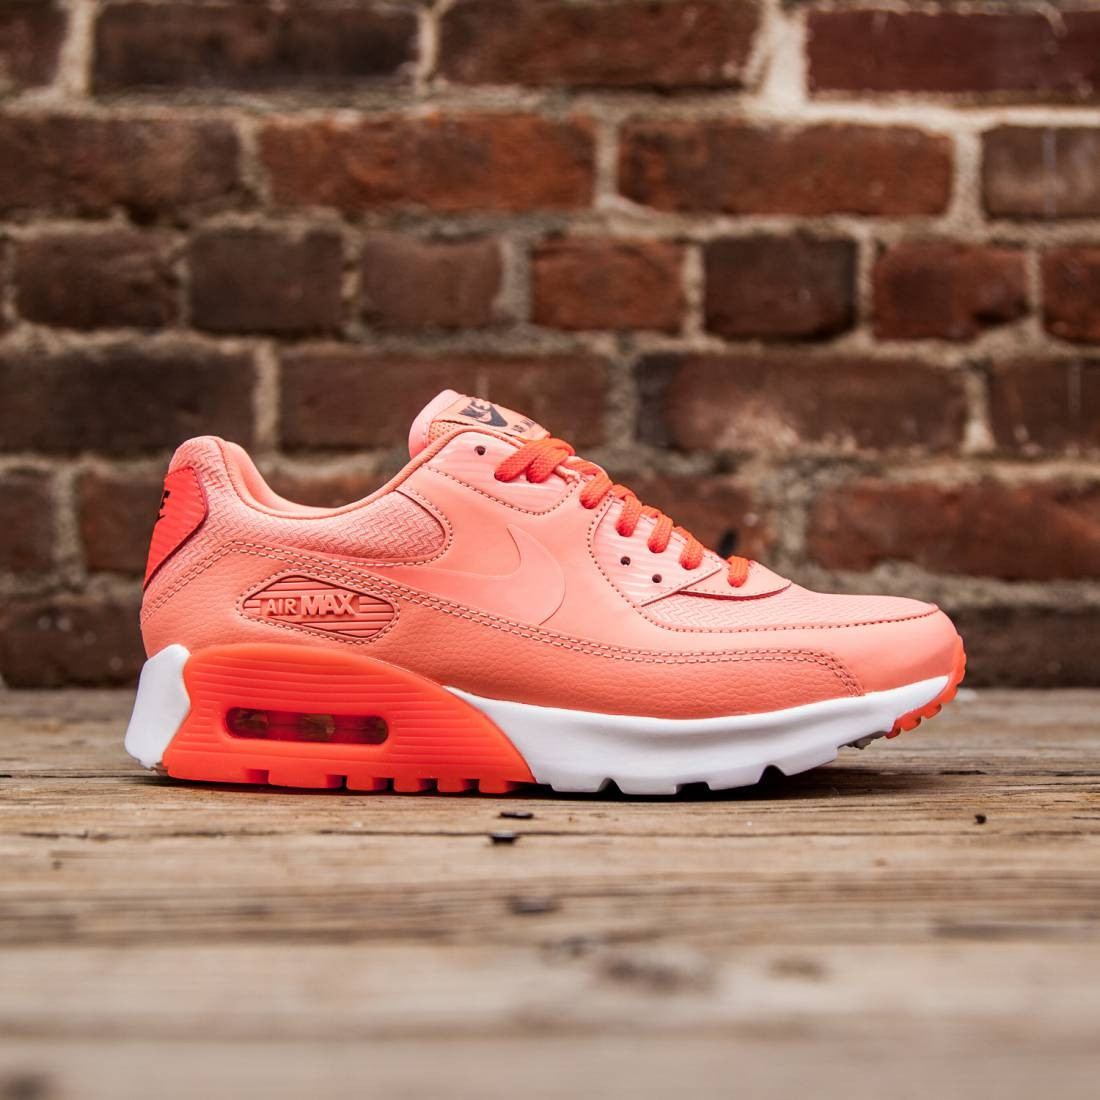 Atomic Pink Nike Air Max 2018 Nike Women Air Max 90 Ultra Essential (atomic pinktotal crimsondark greyatomic  pink)